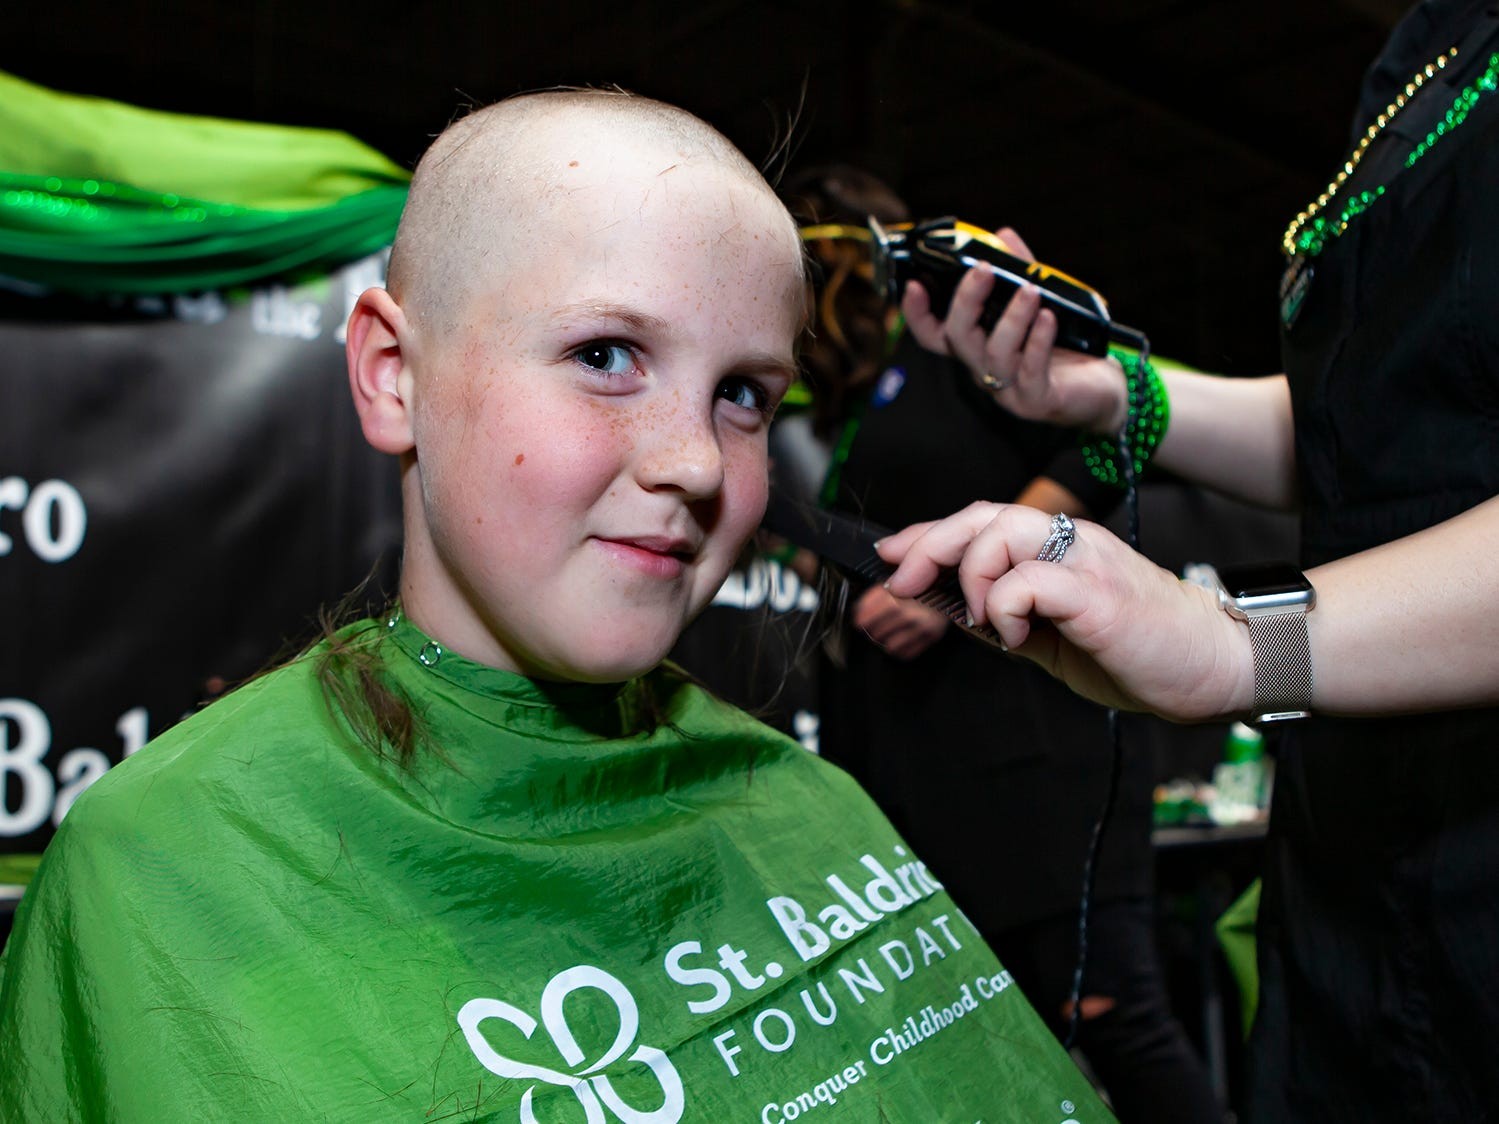 Richie Wilson, 10, has braved the shave since the age of 3. His mother ran the same event when the family lived in Connecticut. More than 80 volunteers participated in the ninth annual Bald in the Boro fundraiser for the St. Baldrick's Foundation. The event was held Friday, March 15, 2019 at Lanes, Trains and Automobiles in Murfreesboro.